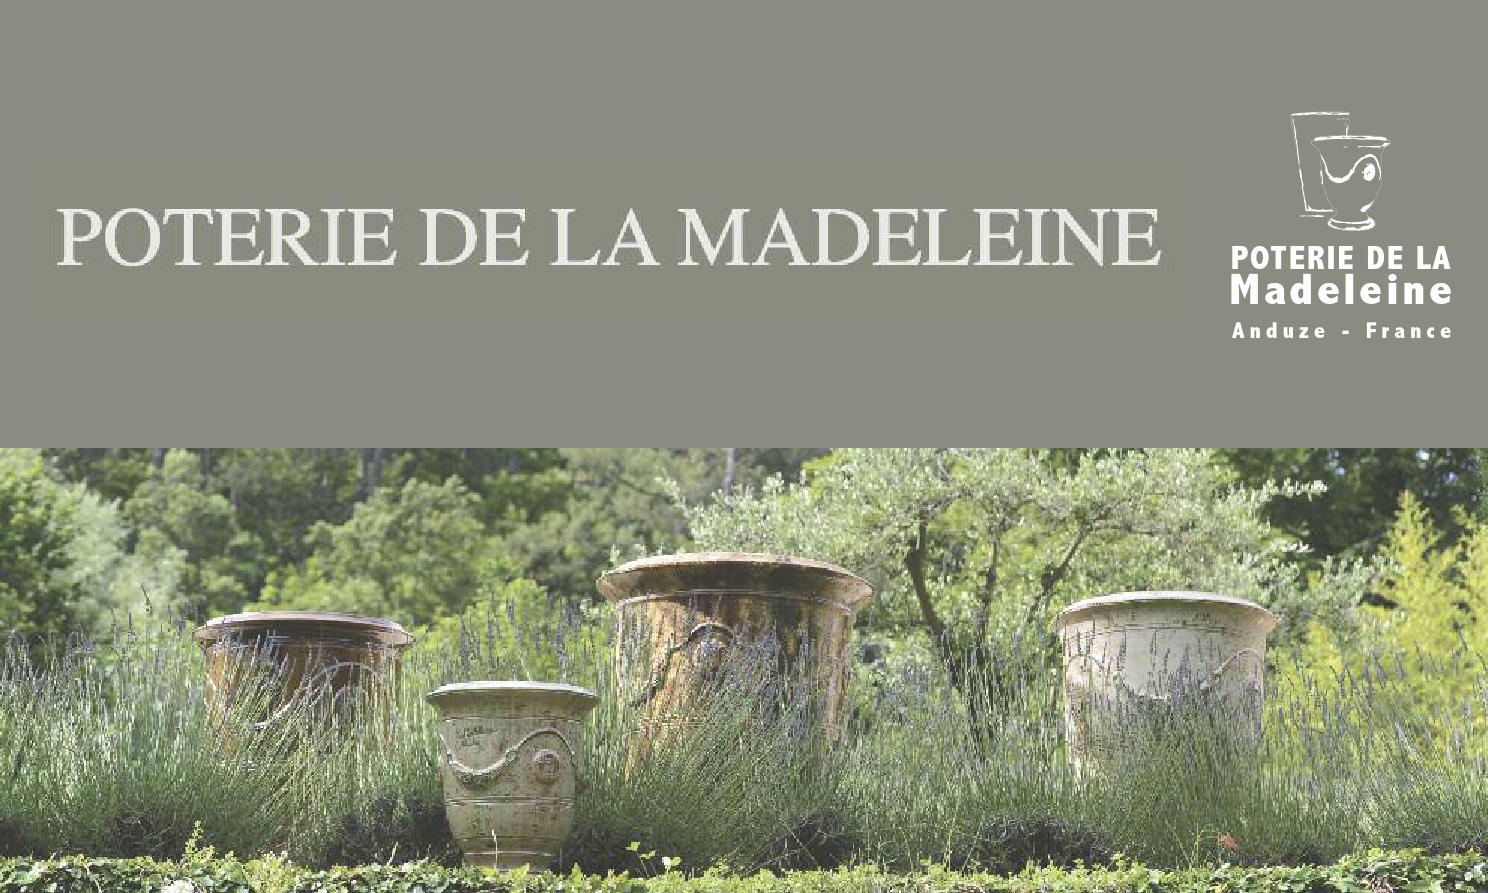 catalogue by poterie de la madeleine issuu. Black Bedroom Furniture Sets. Home Design Ideas